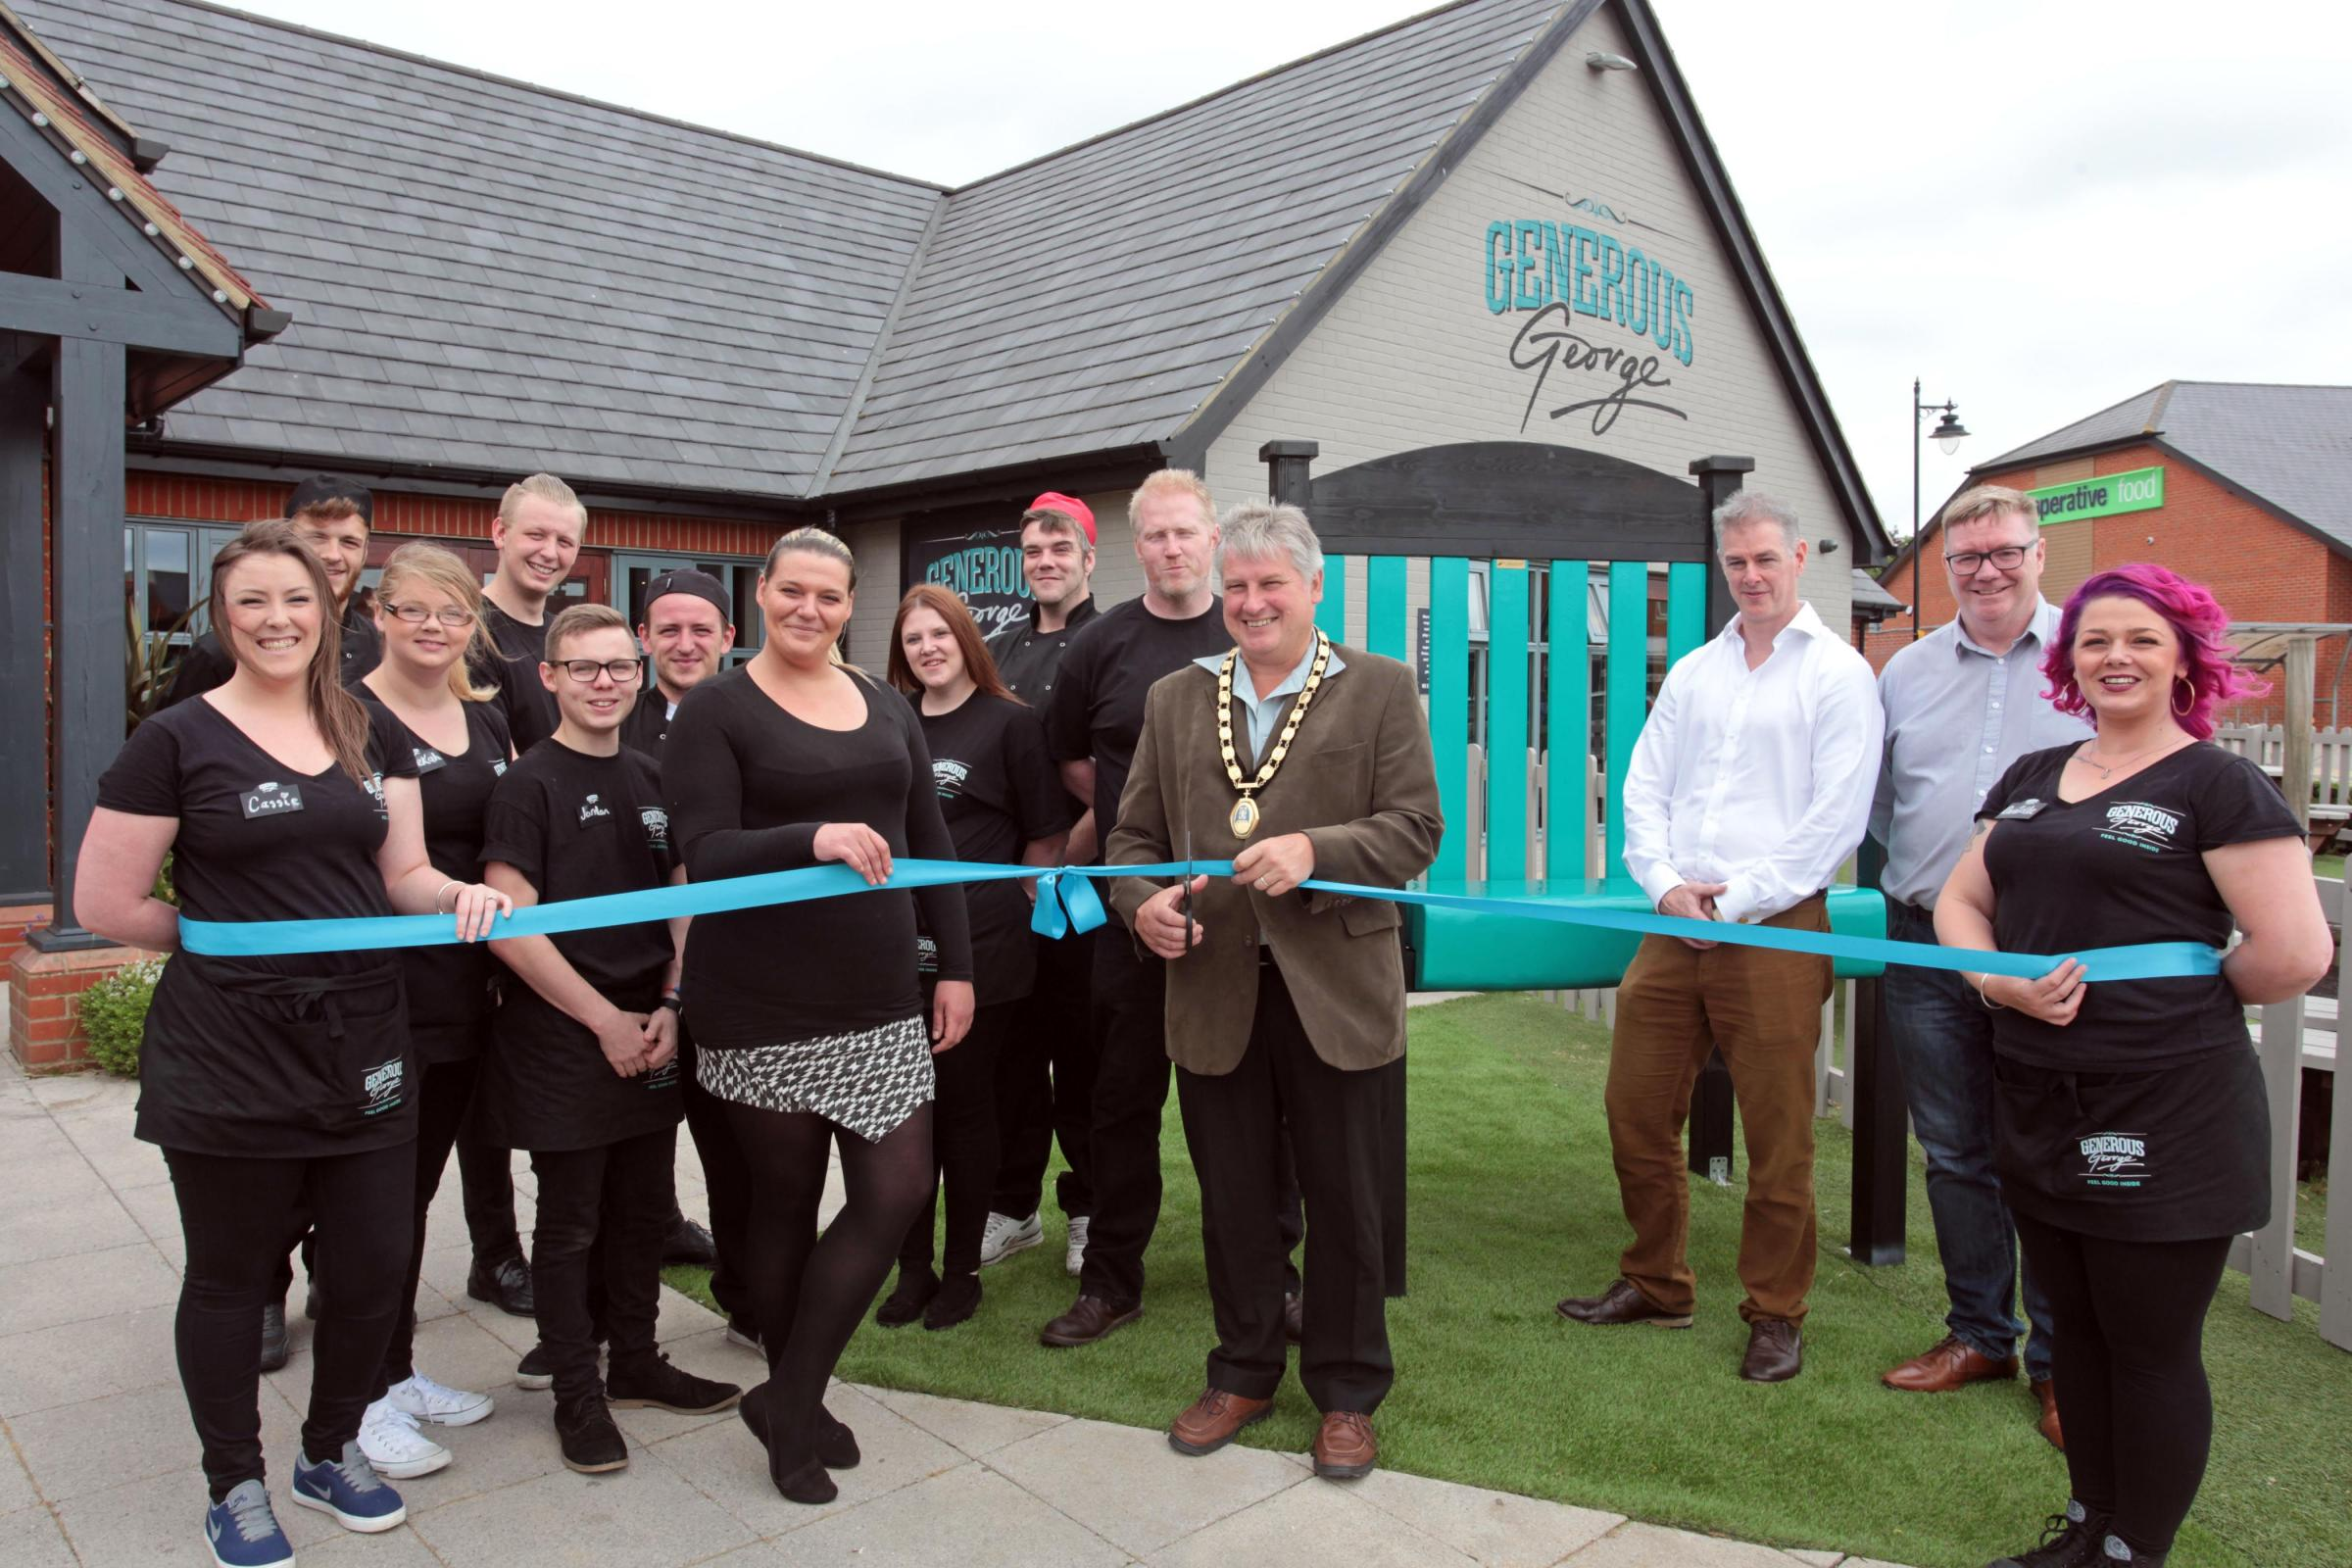 Cassie Kirkdale, Charlie Bell, Rebekah Killick, Josh Harris, Jordan Cuthbertson,  Liam Hoffman, Sammy Sart,  Becca Seagrave, Tony Downey, Paul Brennan with Mayor, Andrew Williams, Iain Jackson, MD Keith Hitchens and Danielle Davies at the reopened Orchard